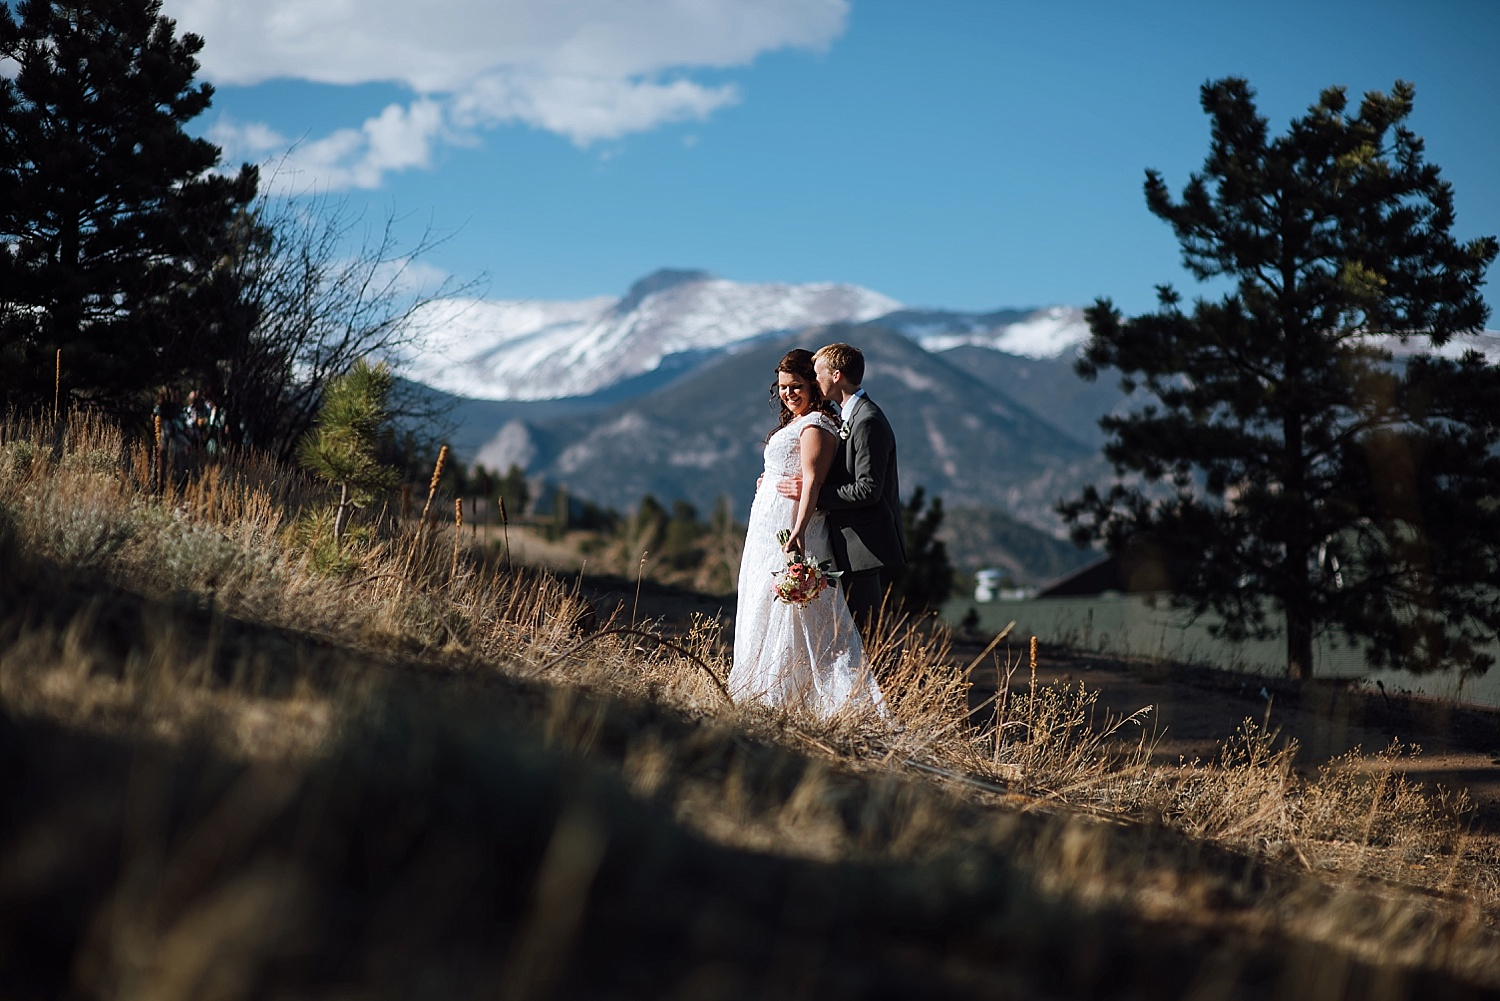 Mary's Lake Lodge up in Estes Park, Colorado is the perfect location for an adventurous mountain wedding!Photo by Maddie Mae Photography